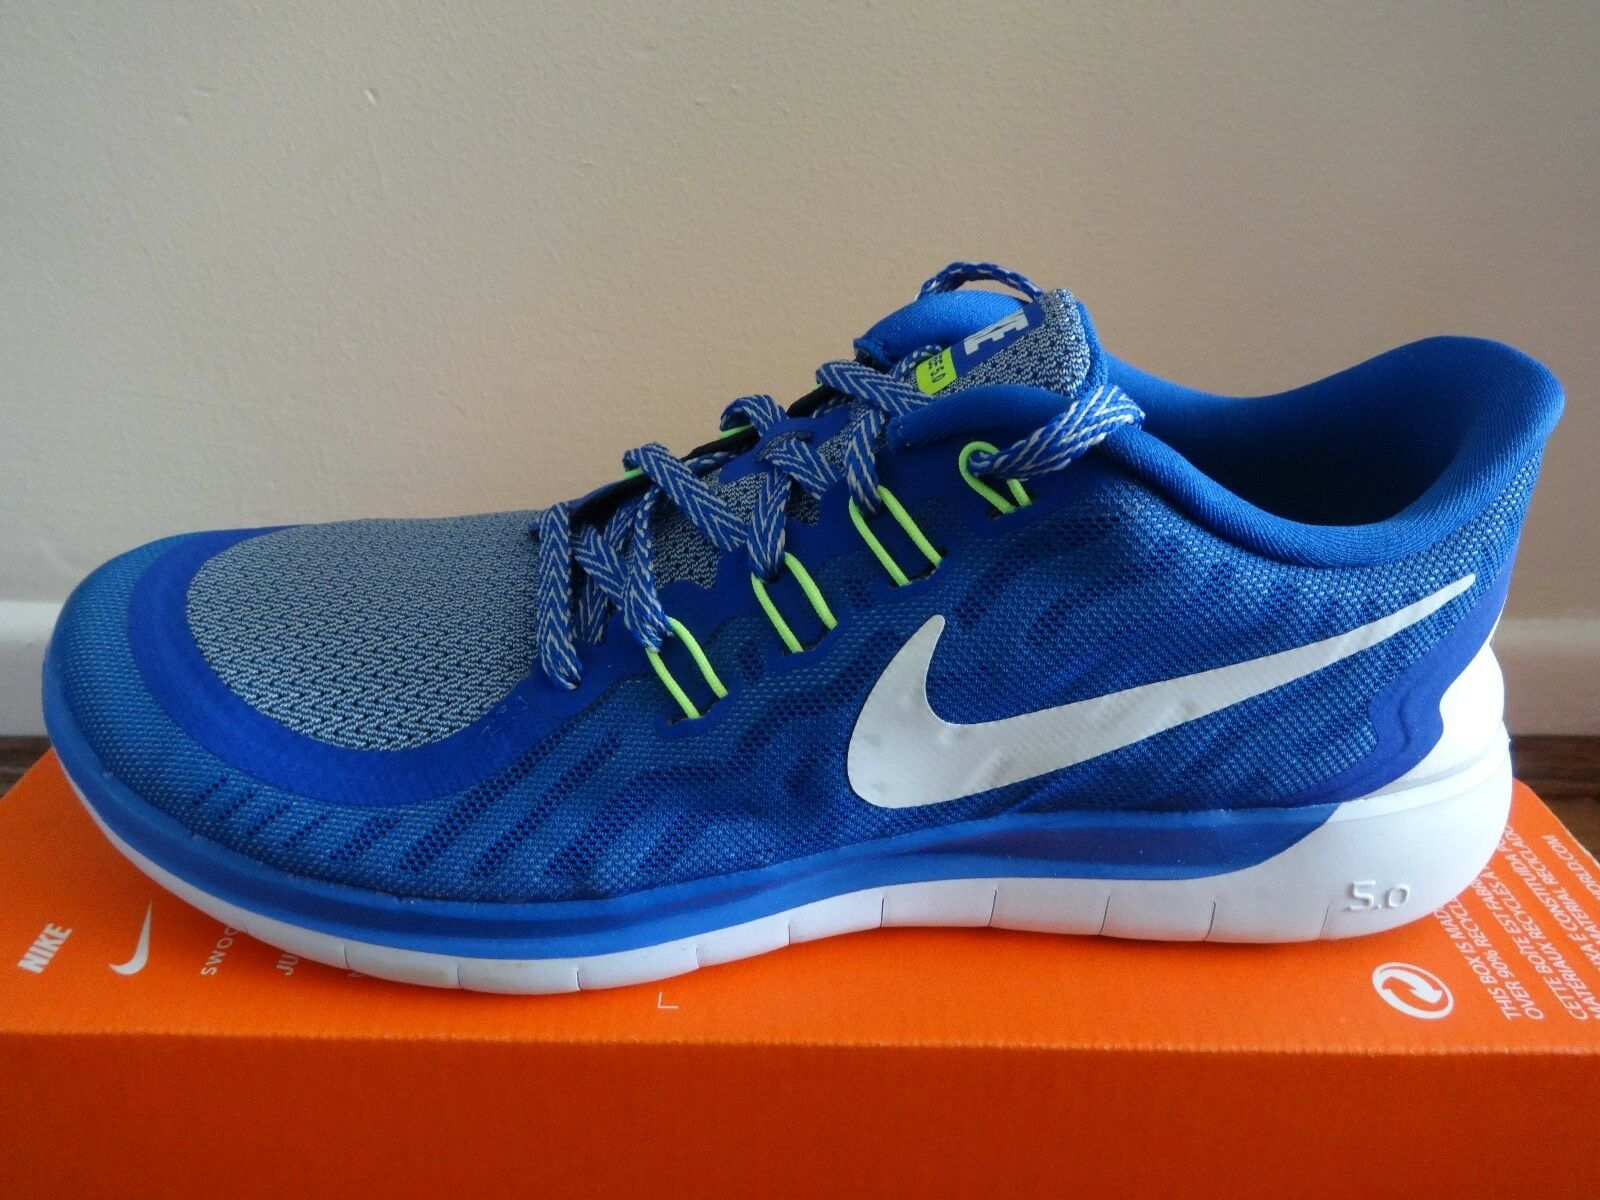 Nike free 5.0 mens trainers NEW Turnschuhe schuhe 724382 410 NEW trainers 85ccb6